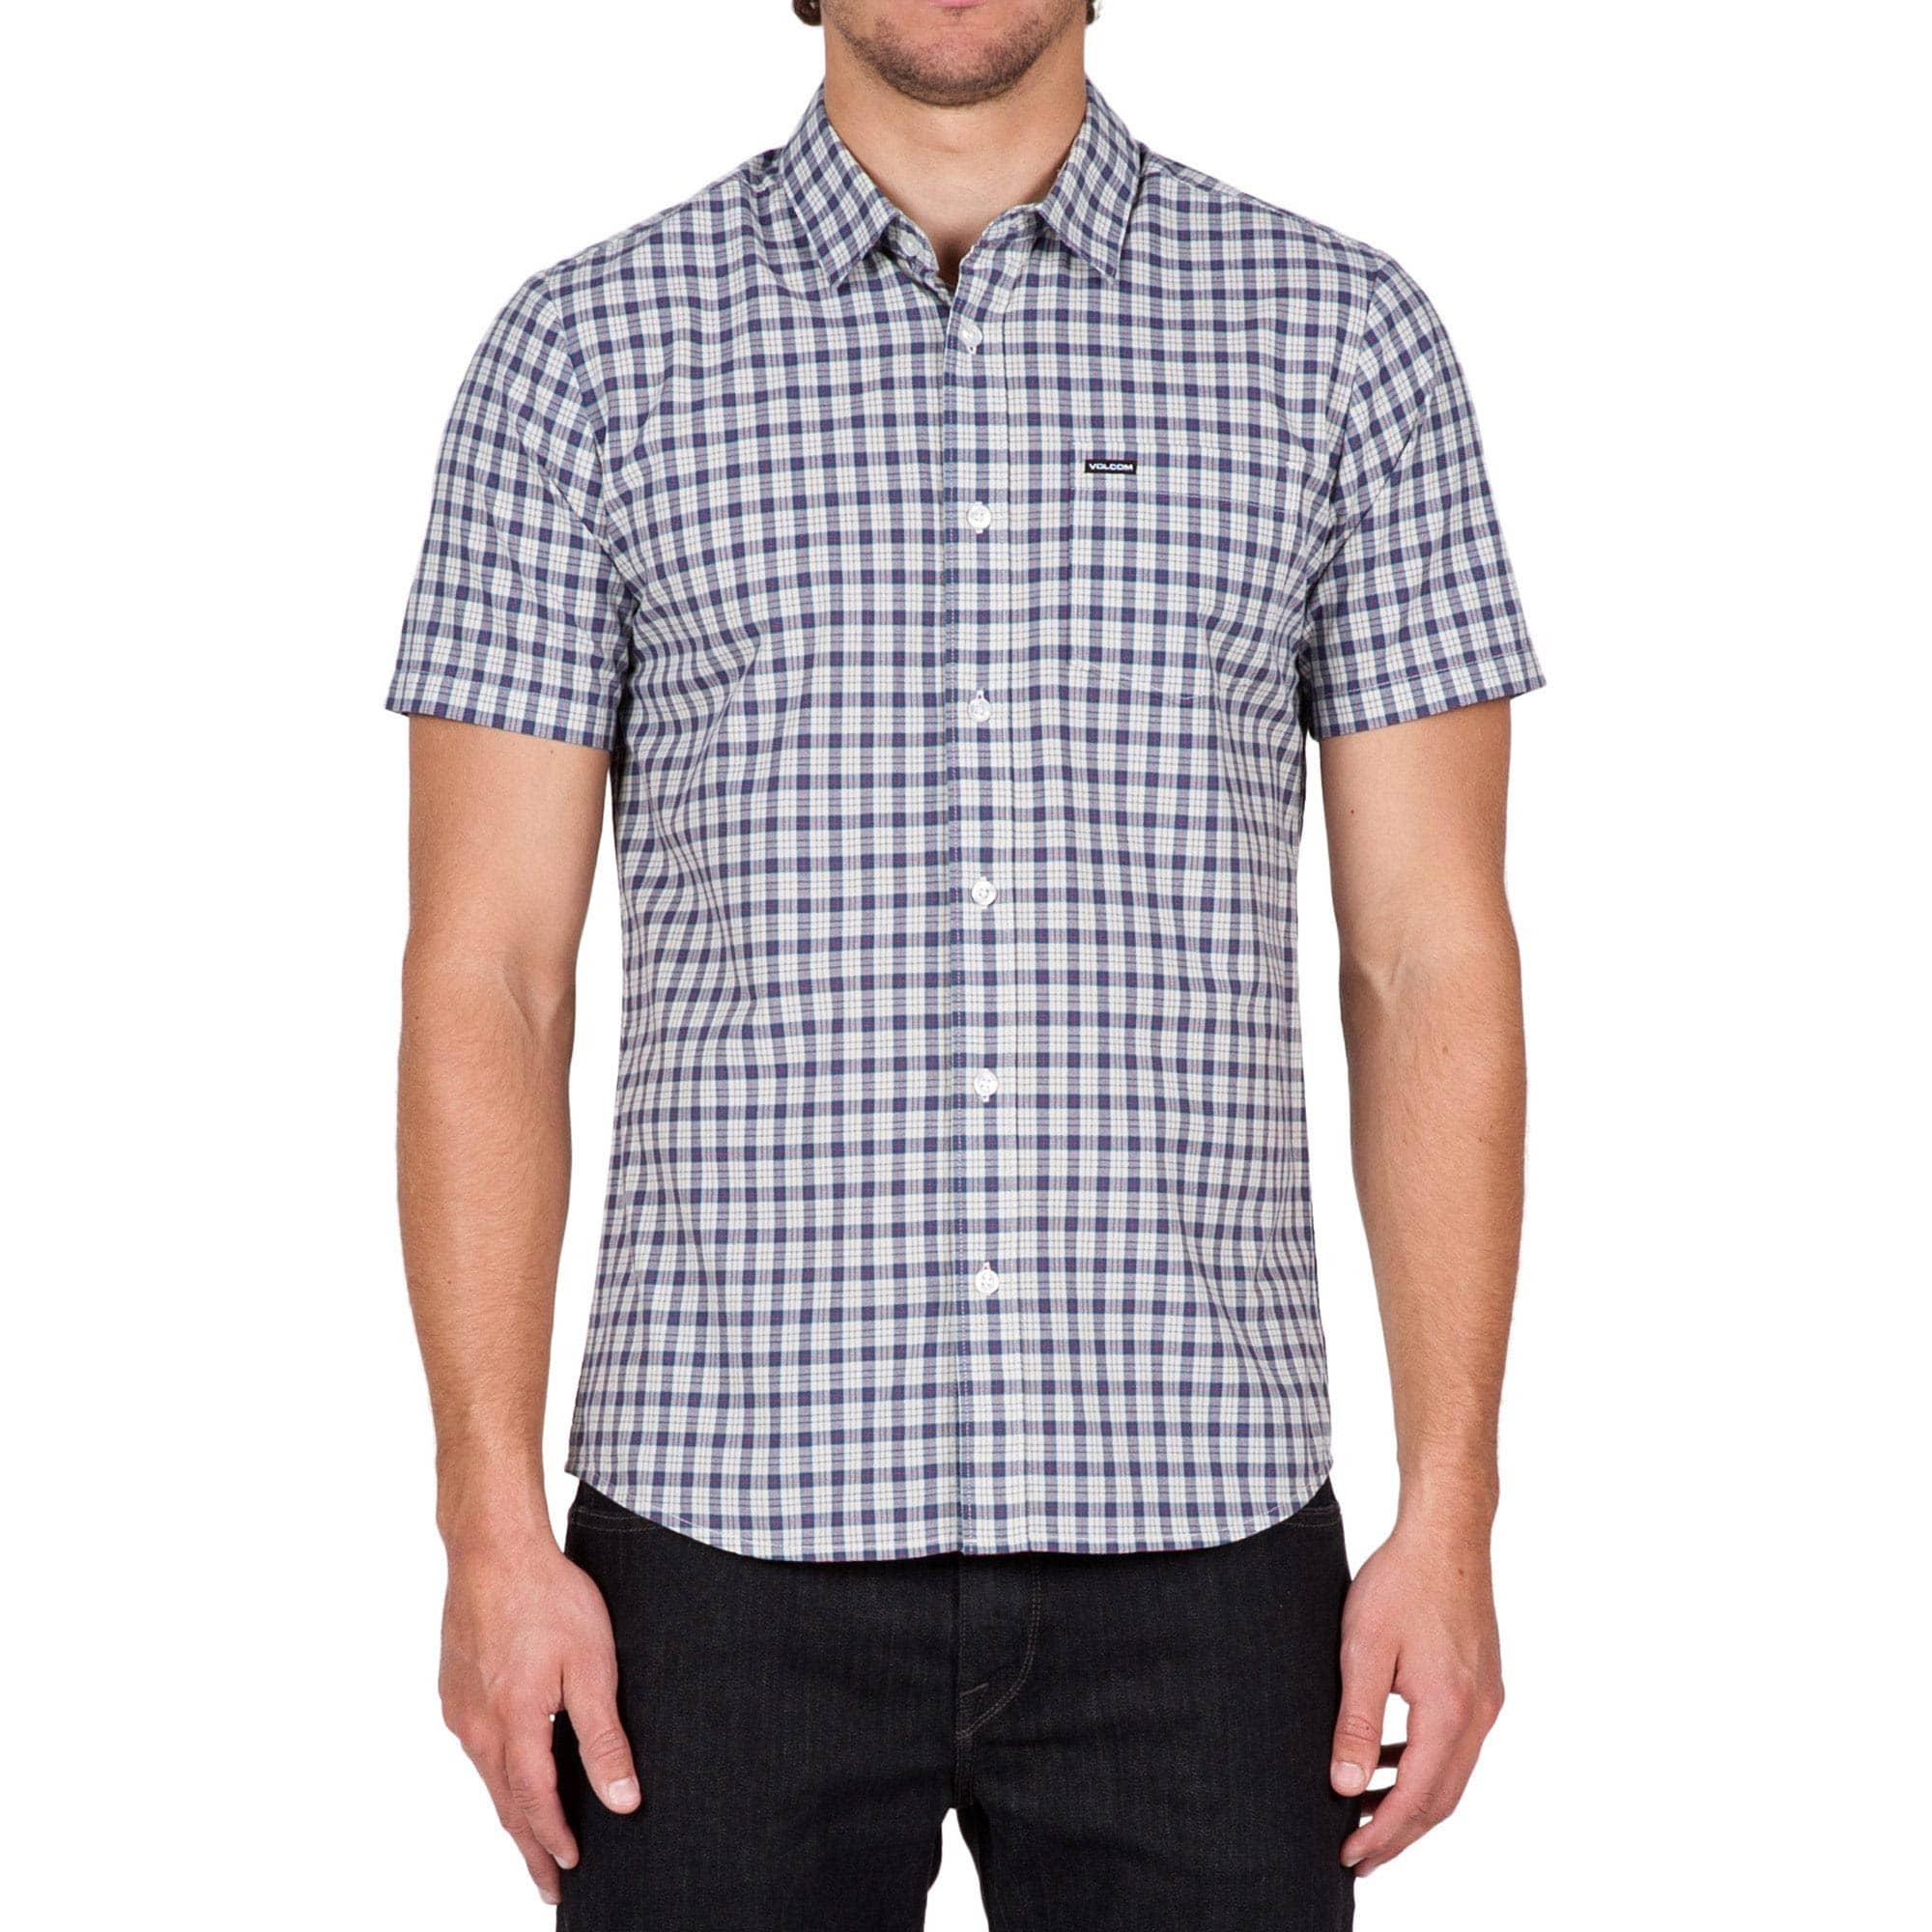 Volcom.com Sitewide Coupon  40% Off + Free S&H on $39+